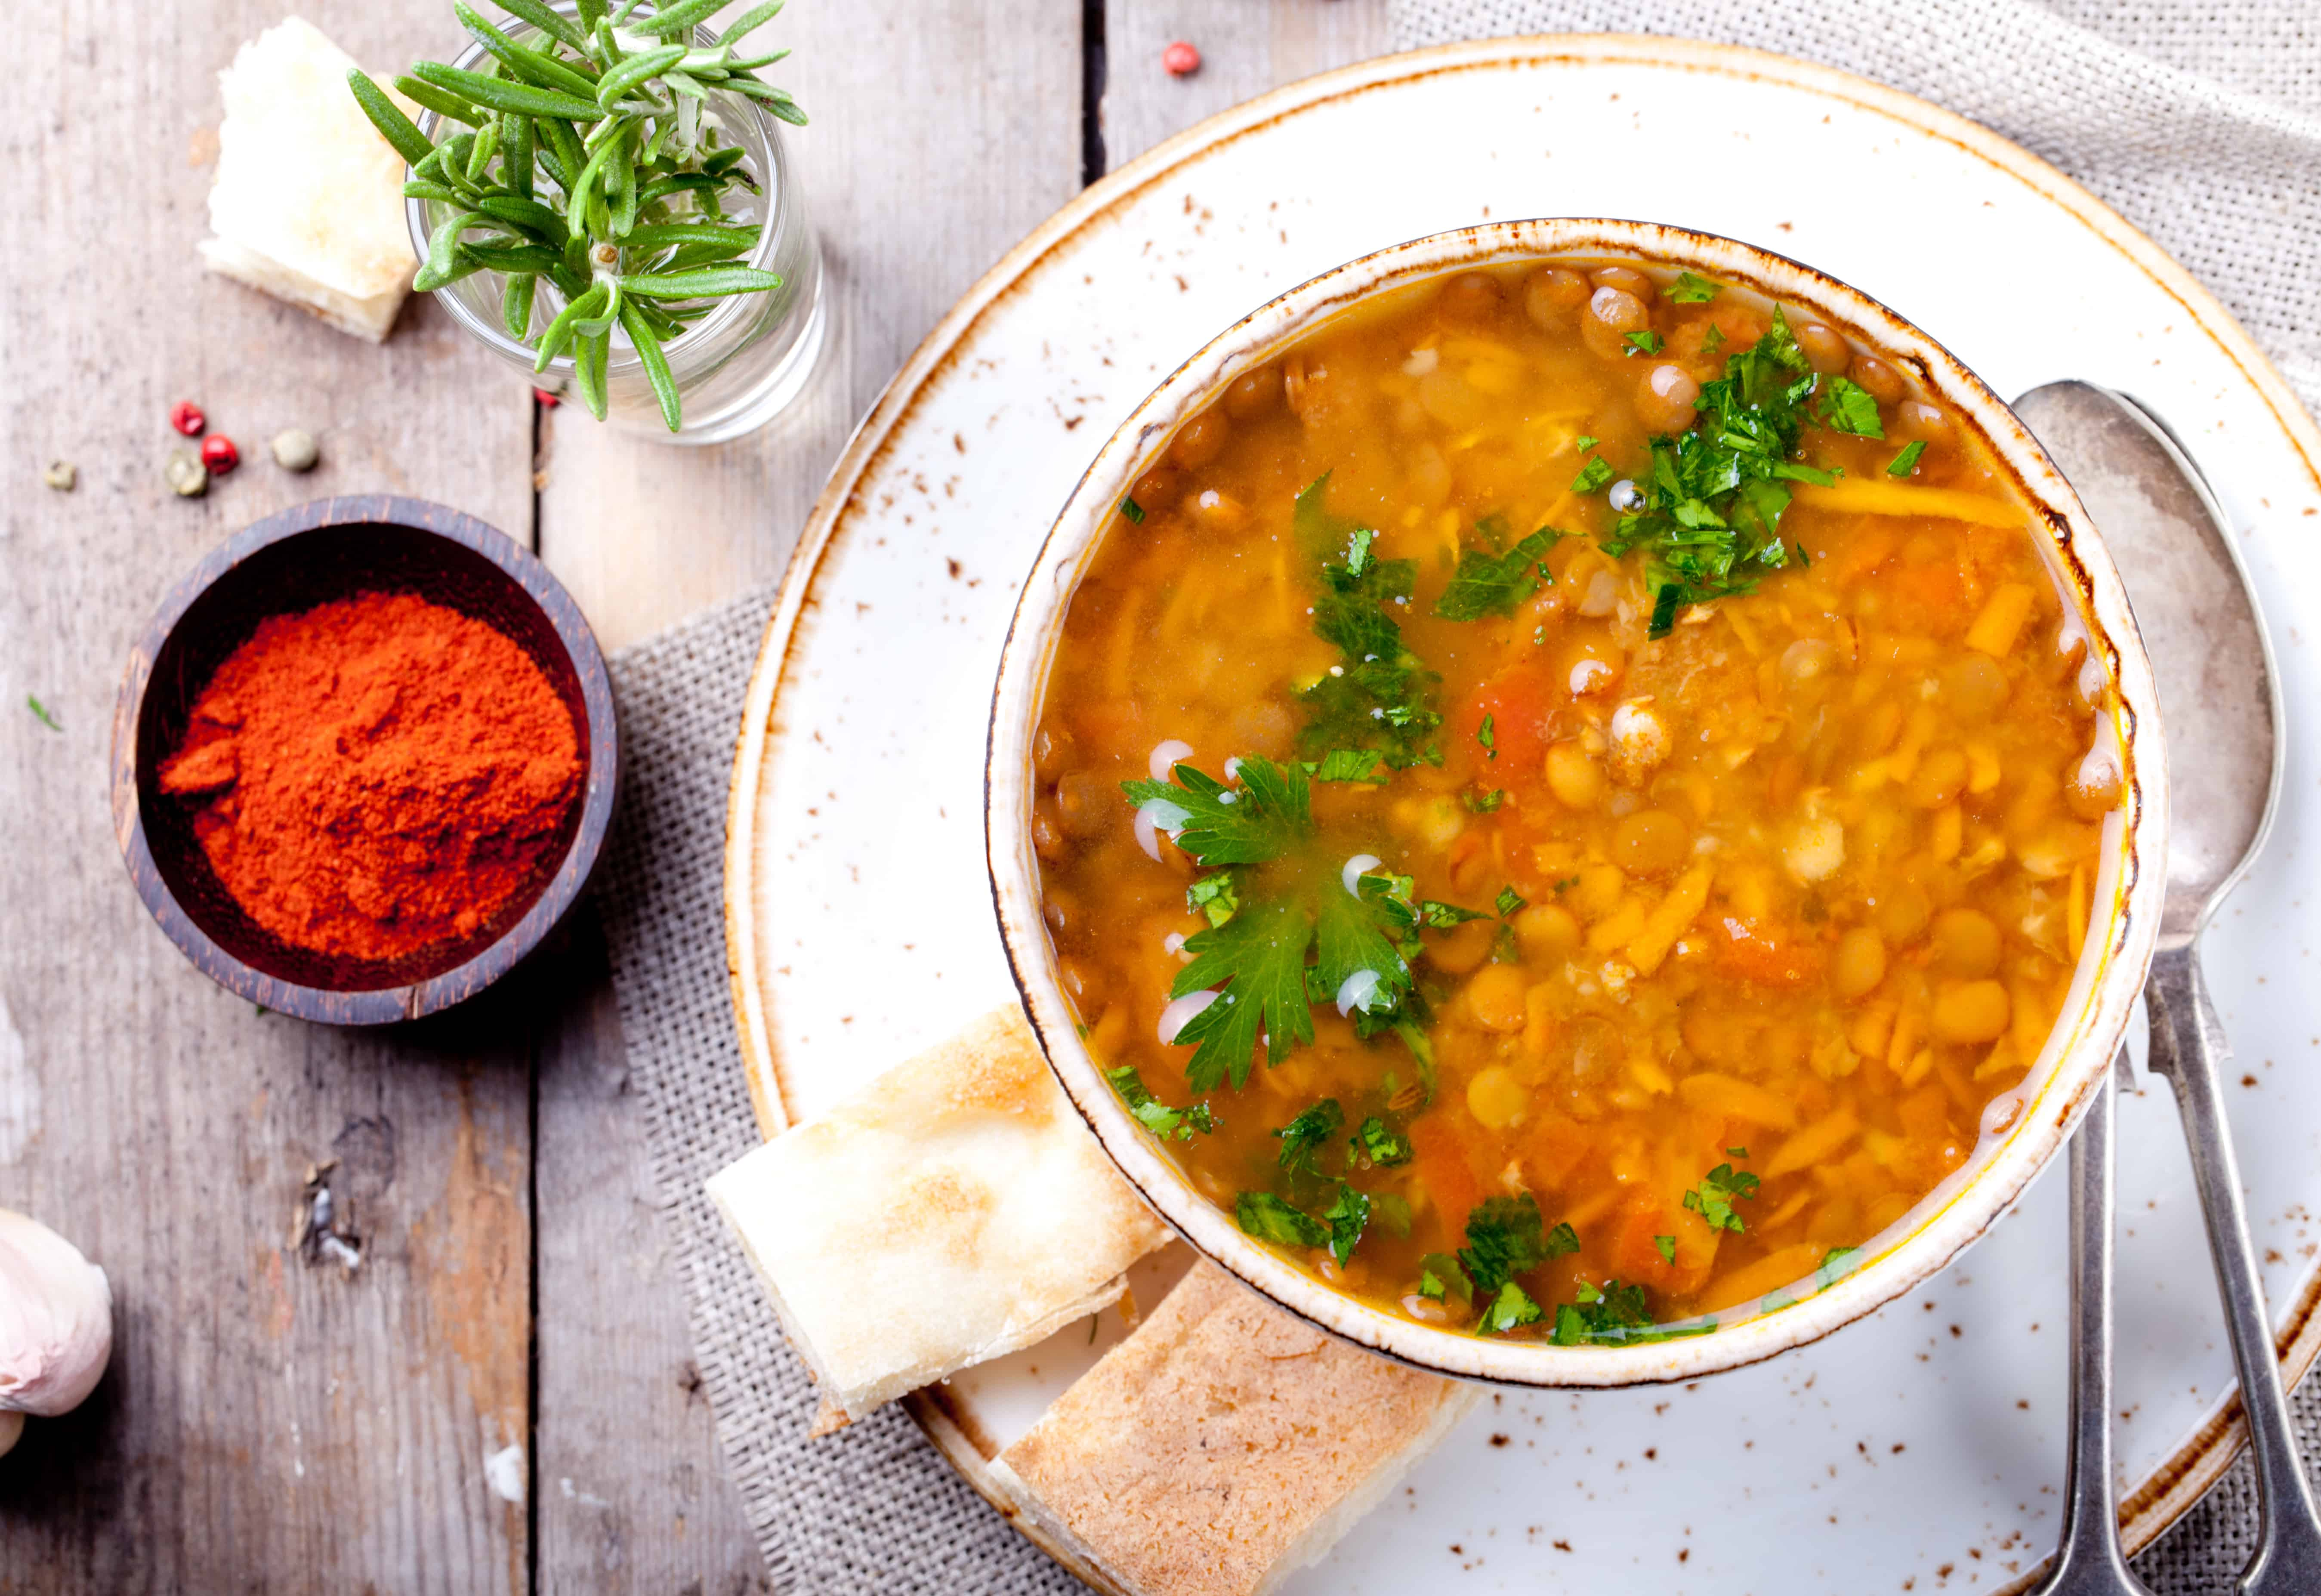 Everything You Need To Know About The Ayurveda Diet